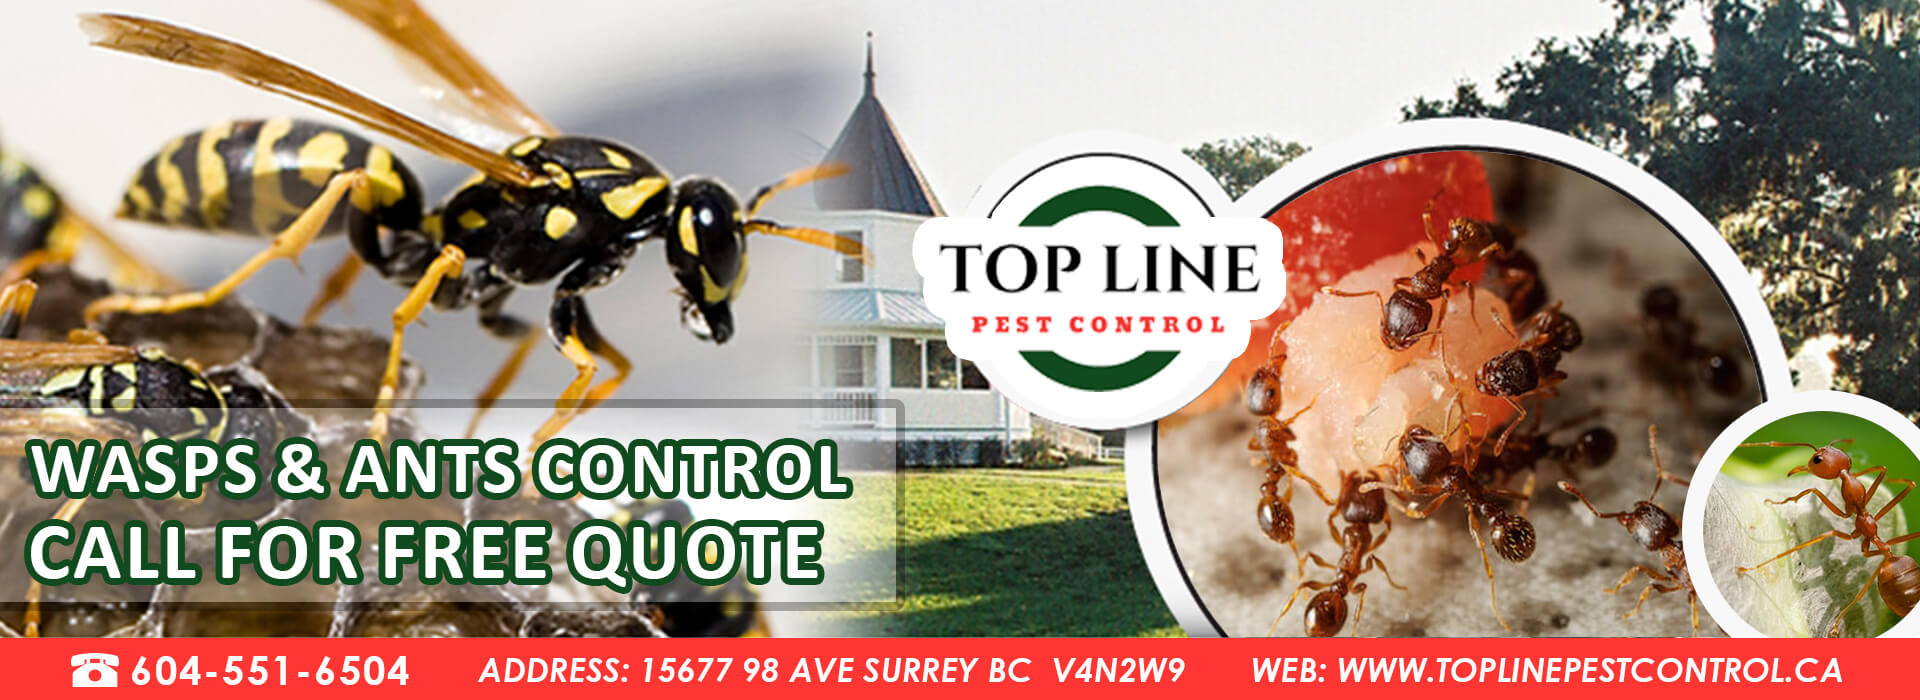 wasps & ants control